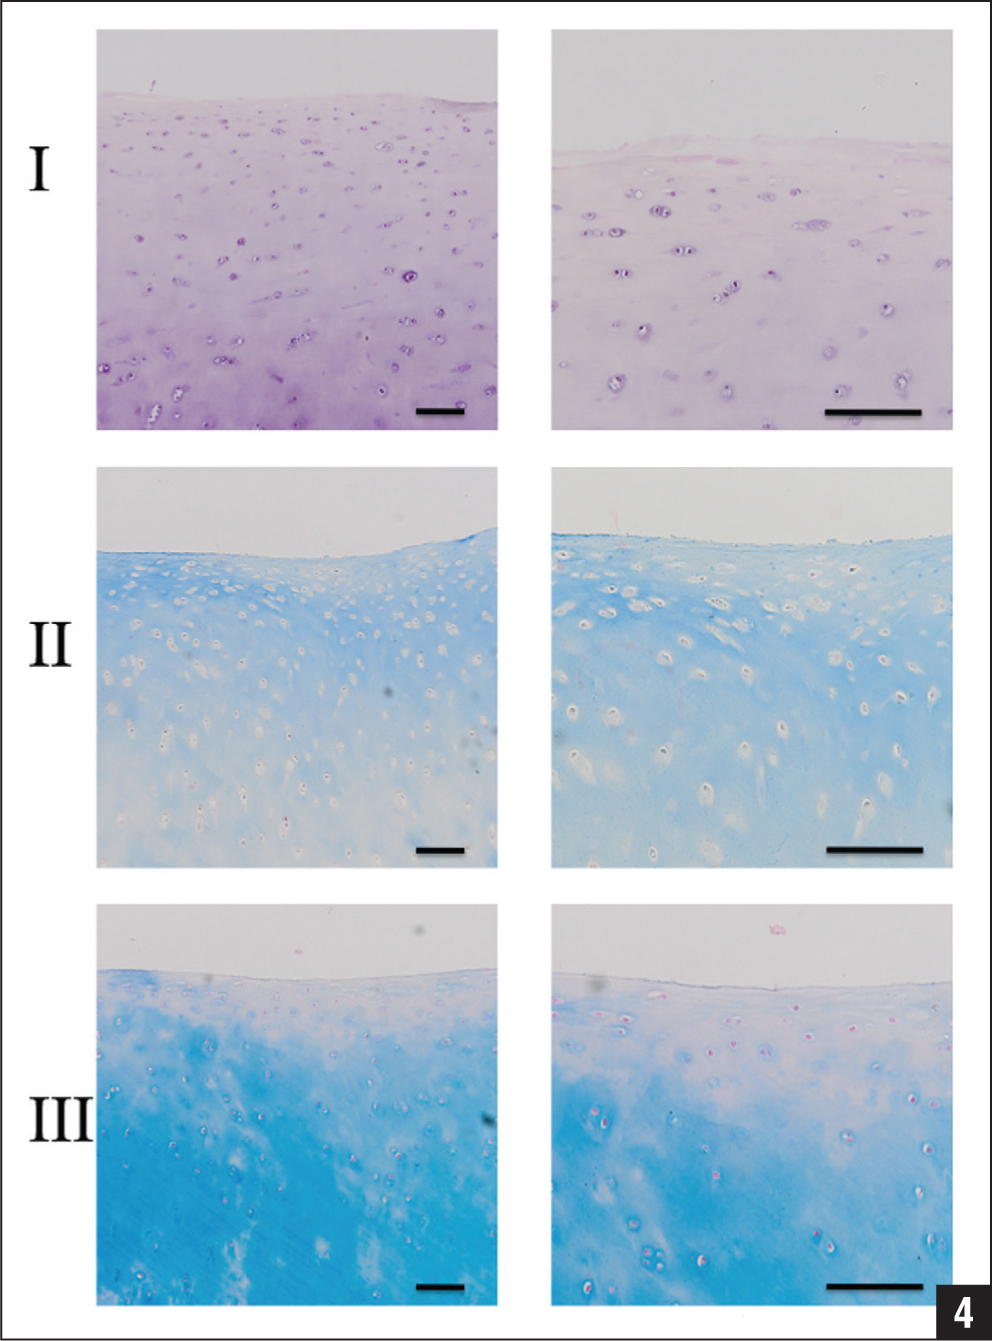 Hematoxylin-eosin (I), azan (II), and alcian (III) stains of human osteoarthritic chondrocytes 4 days after treatment (original magnification × 100 [left column] and ×200 [right column]) on 50-μm slices.